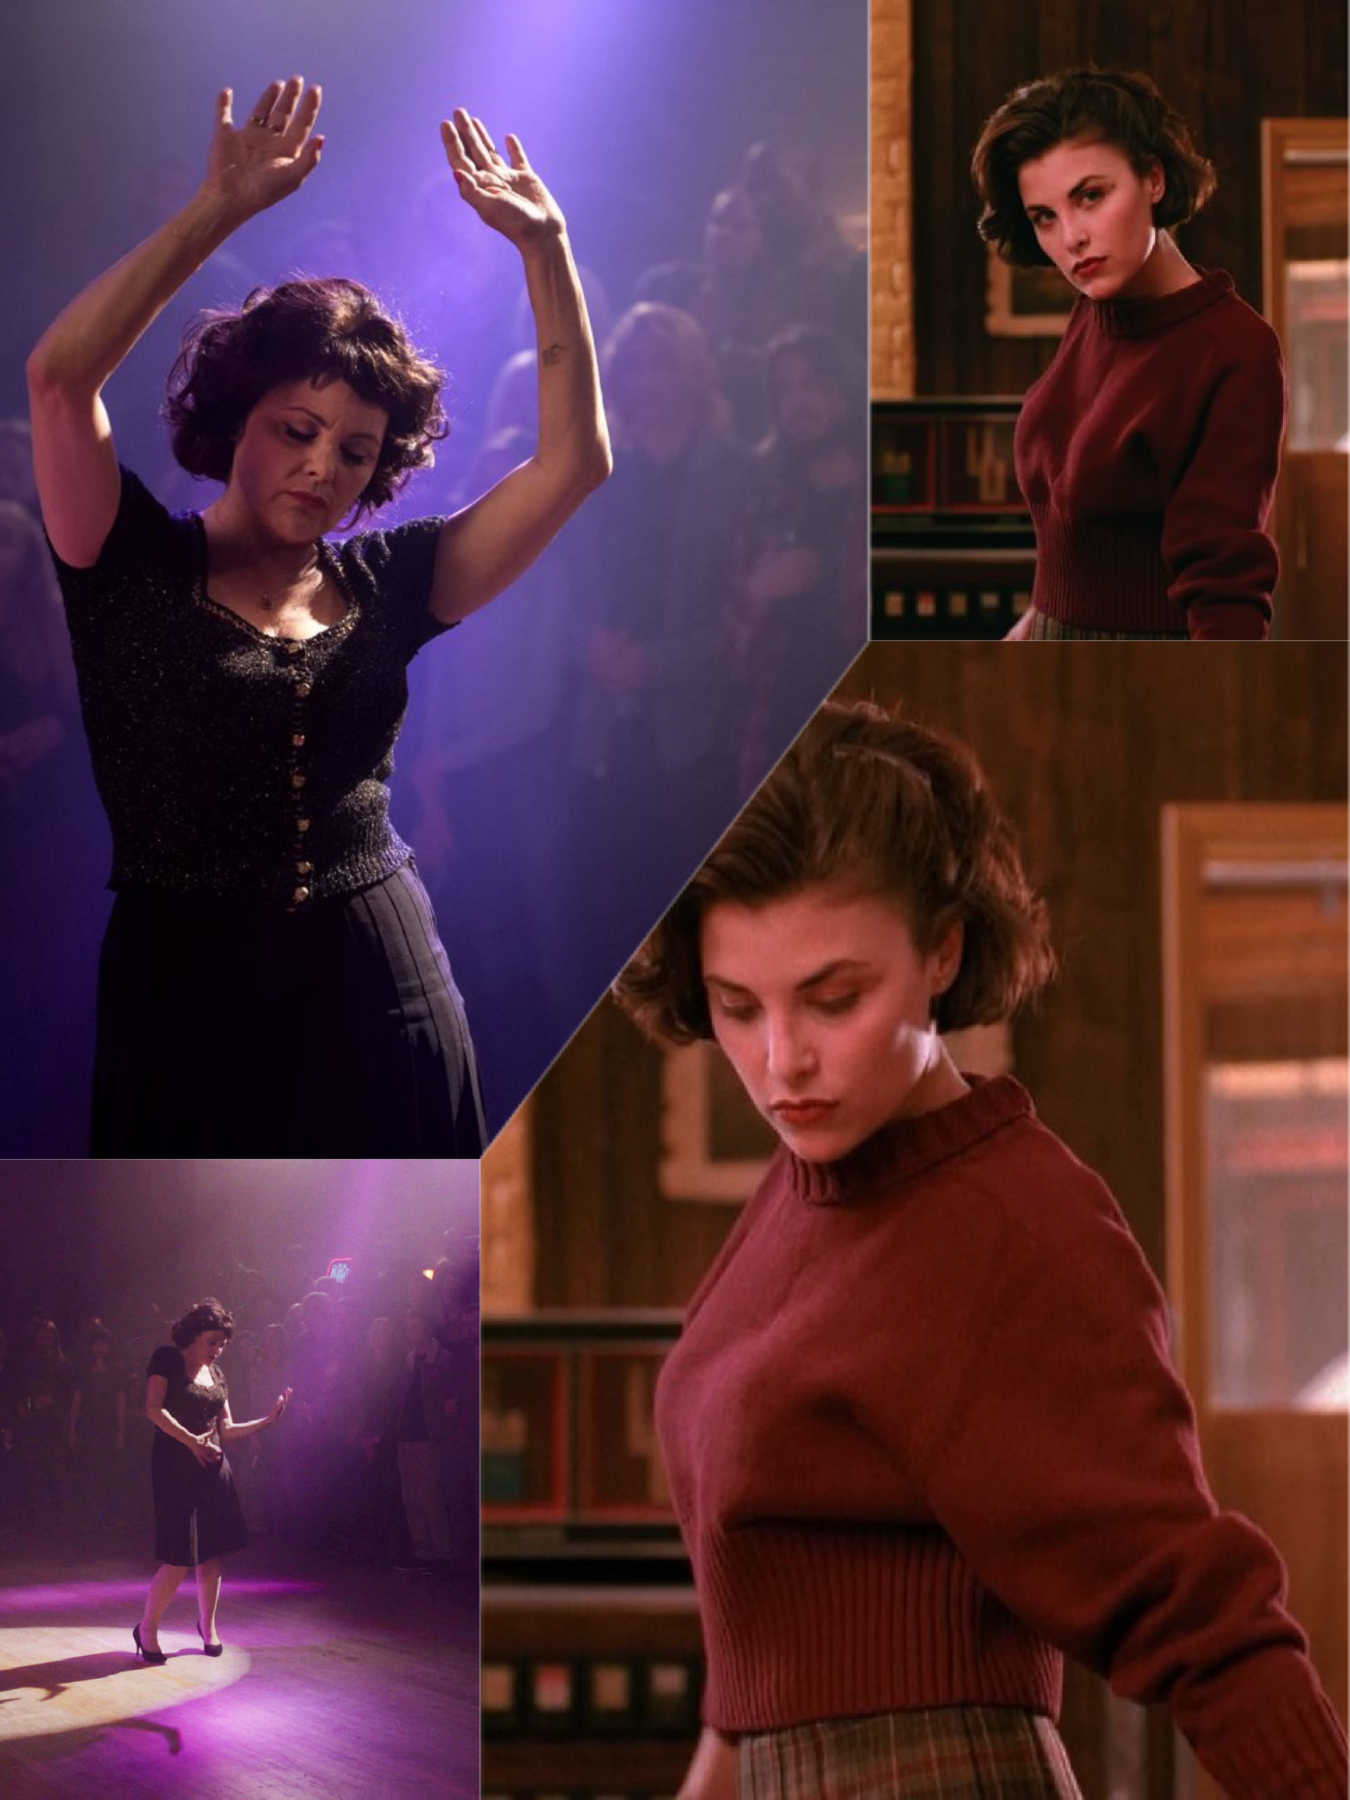 Audrey's Dance from Twin Peaks